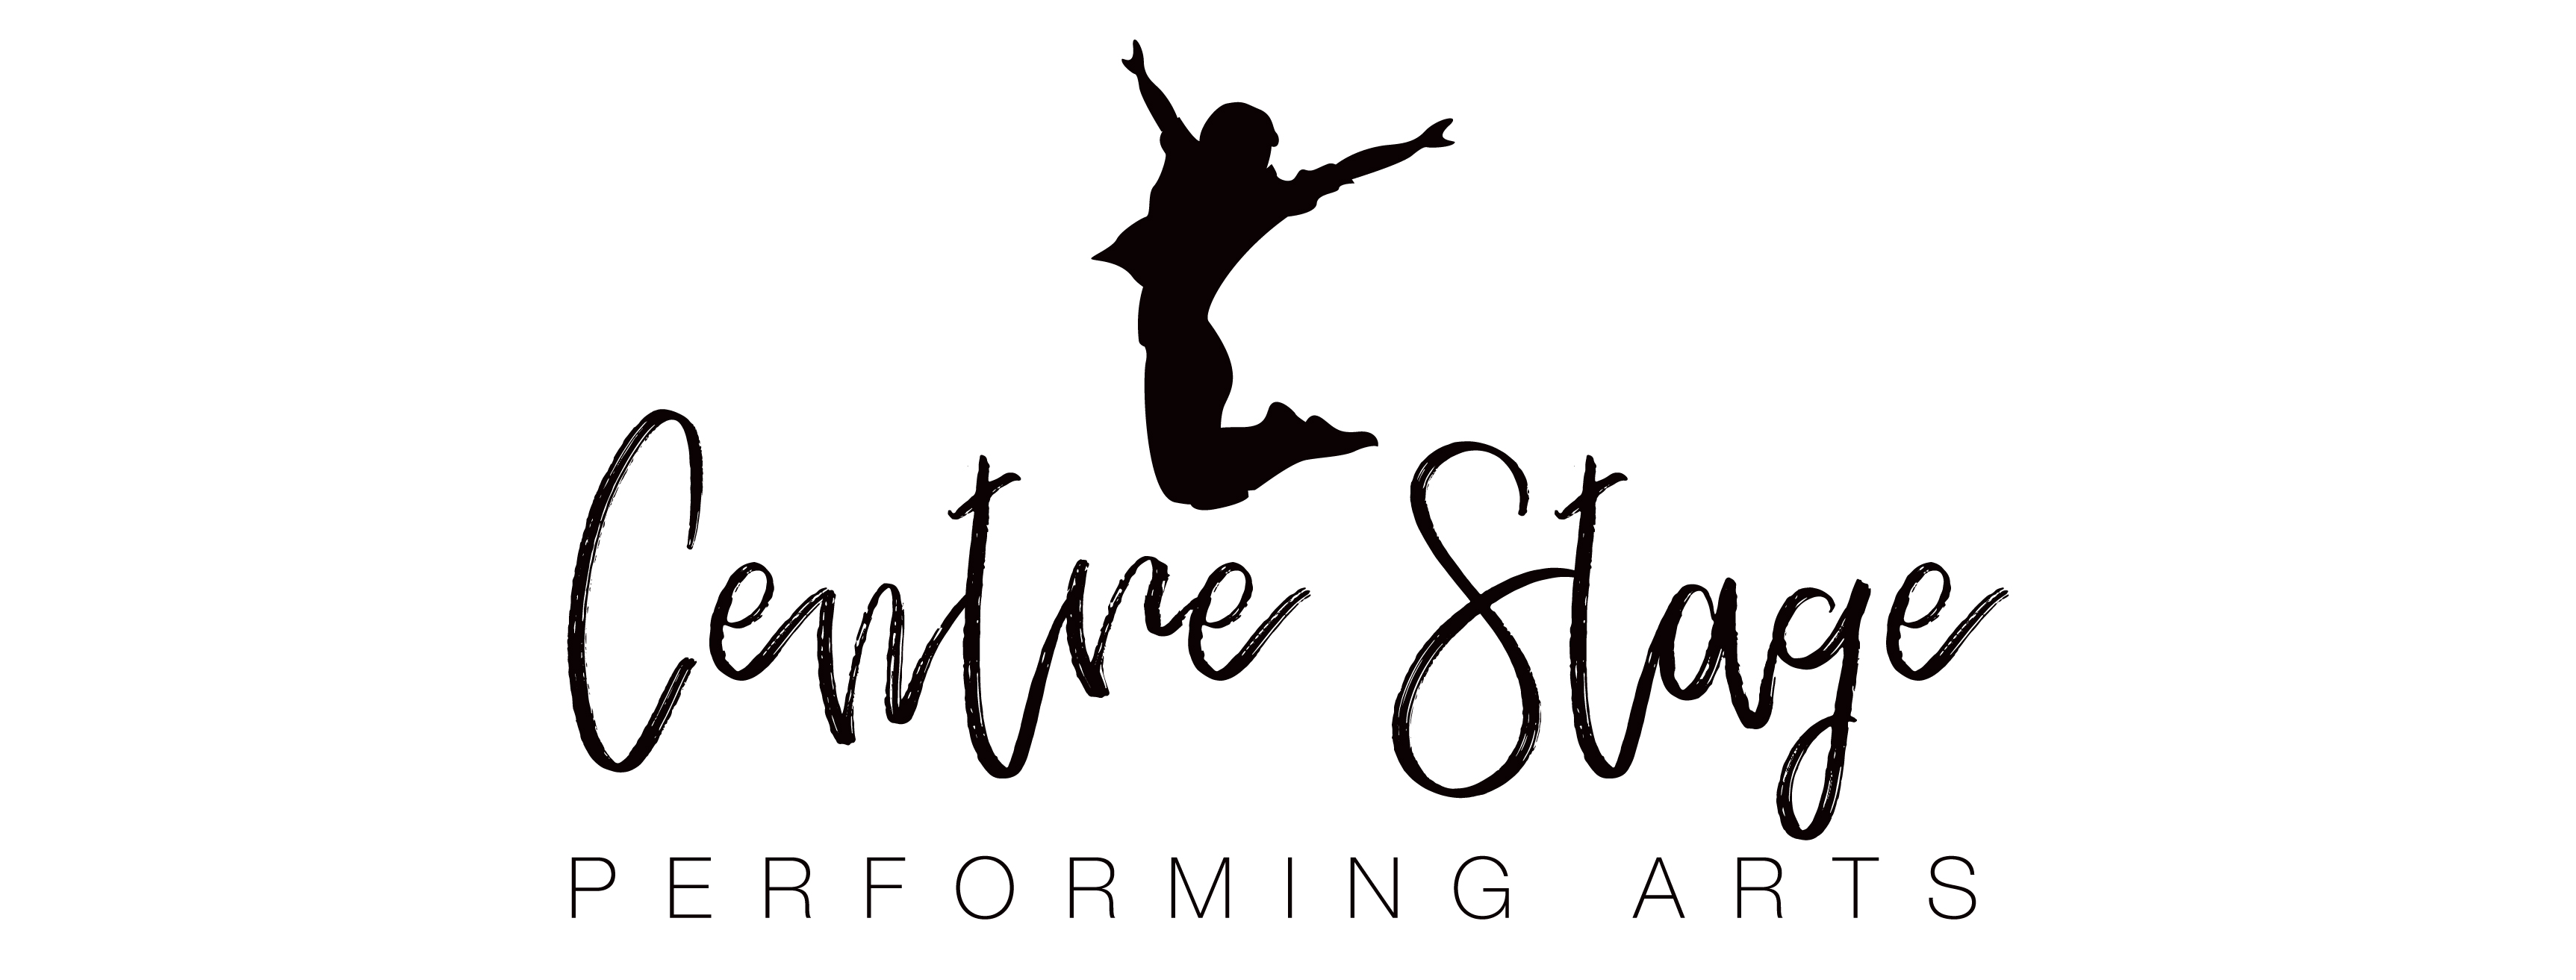 Centre Stage Performing Arts